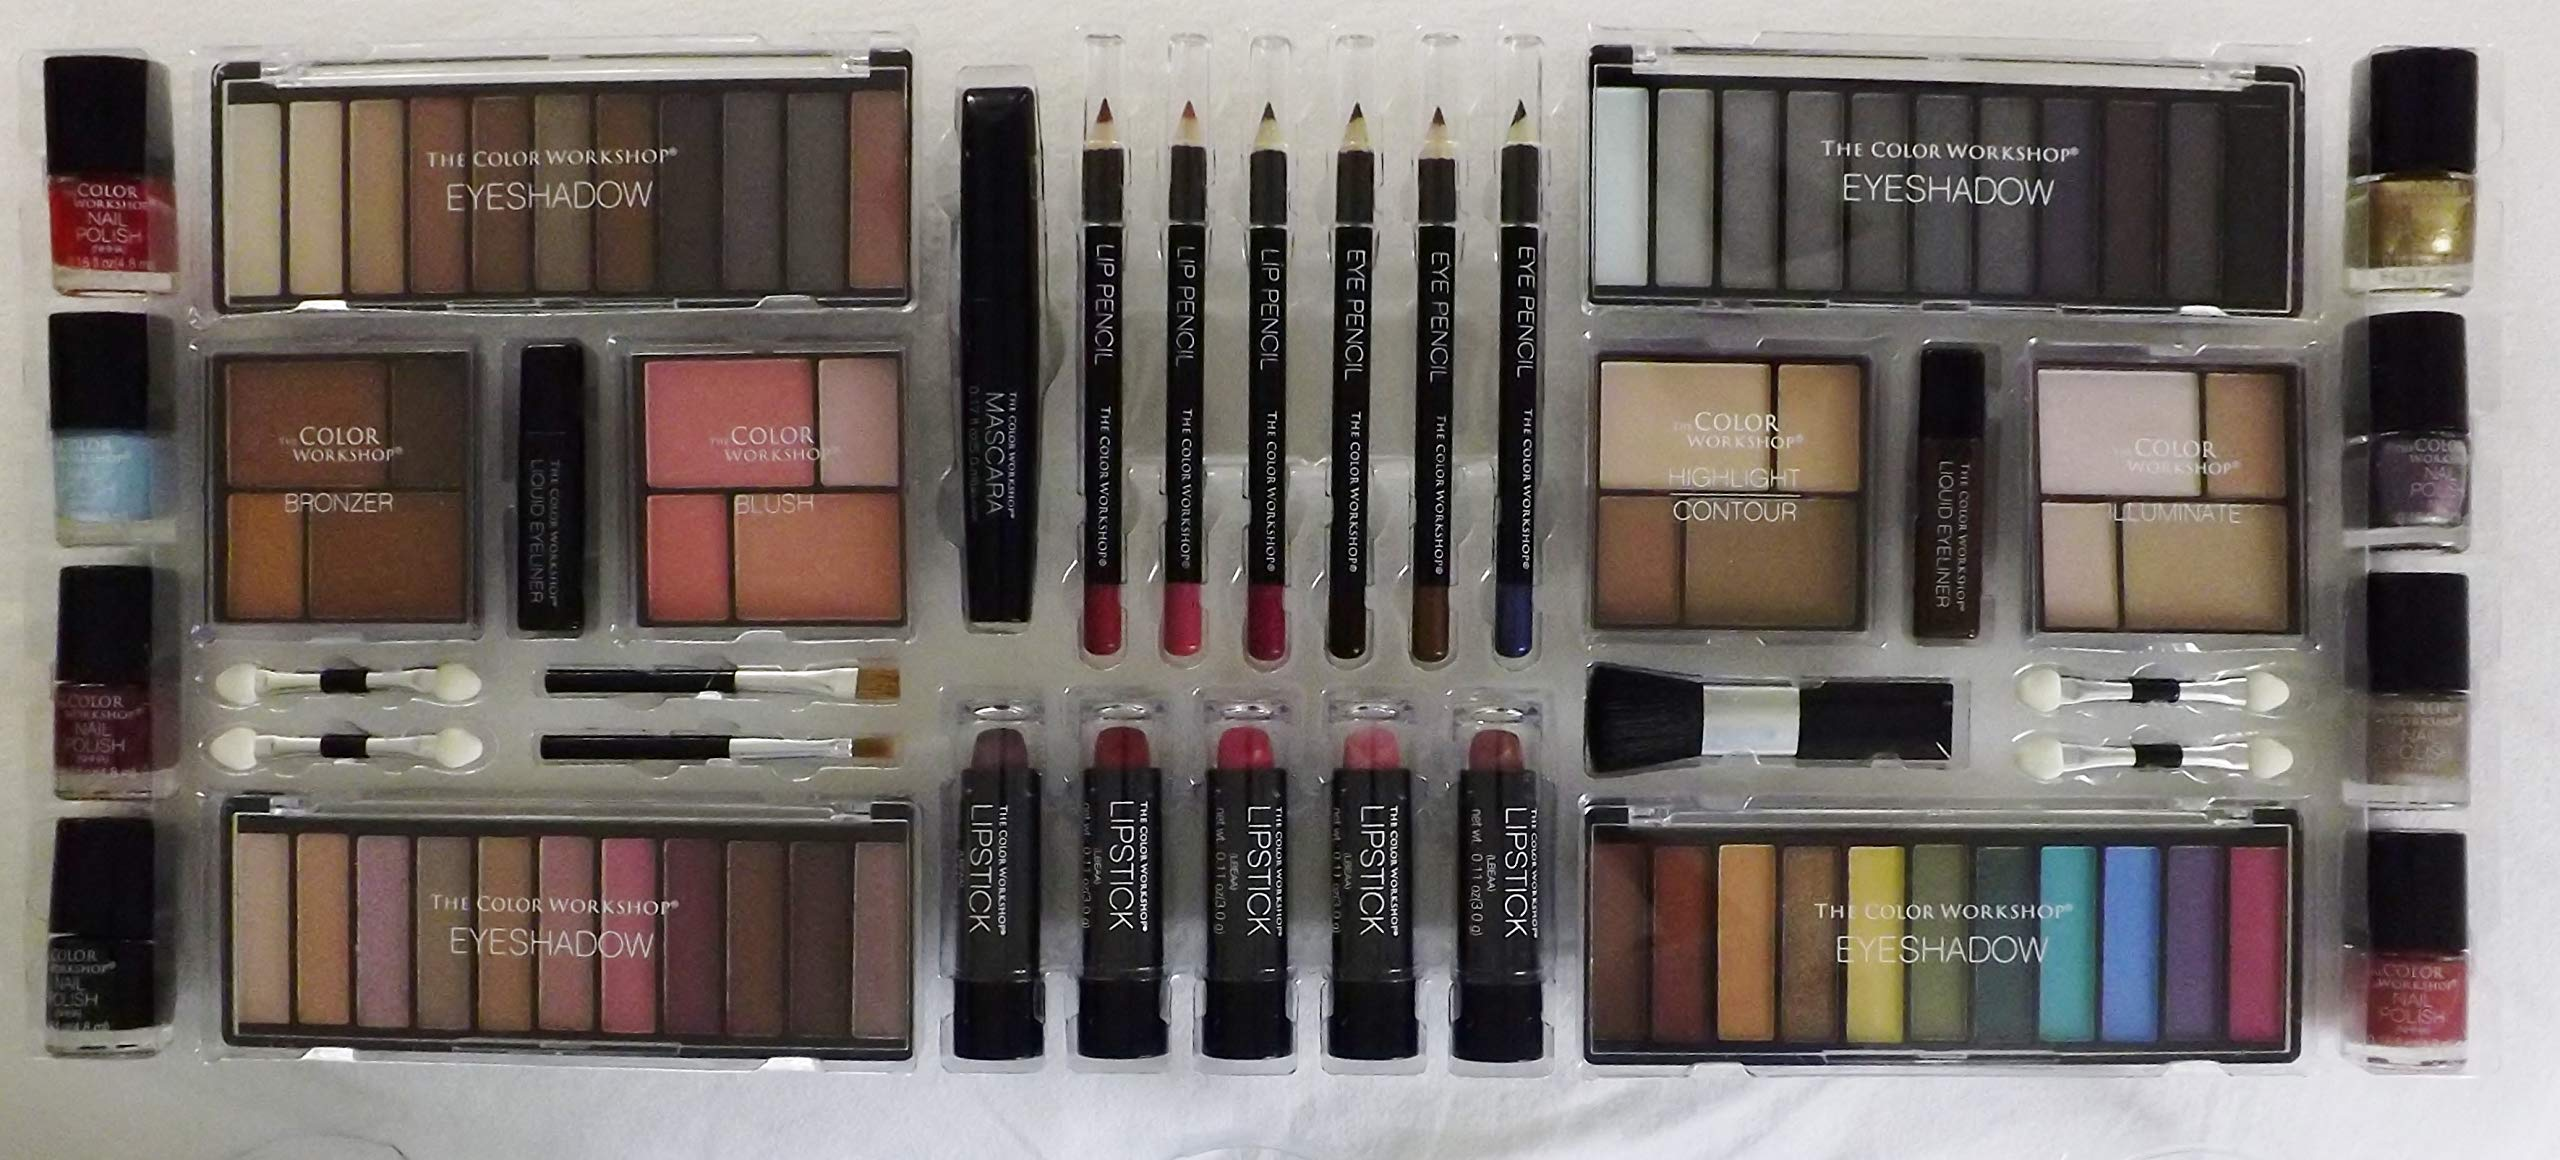 The Color Workshop''Ultimate Color Blockbuster'' 89 Piece Makeup Collection by The Color Workshop